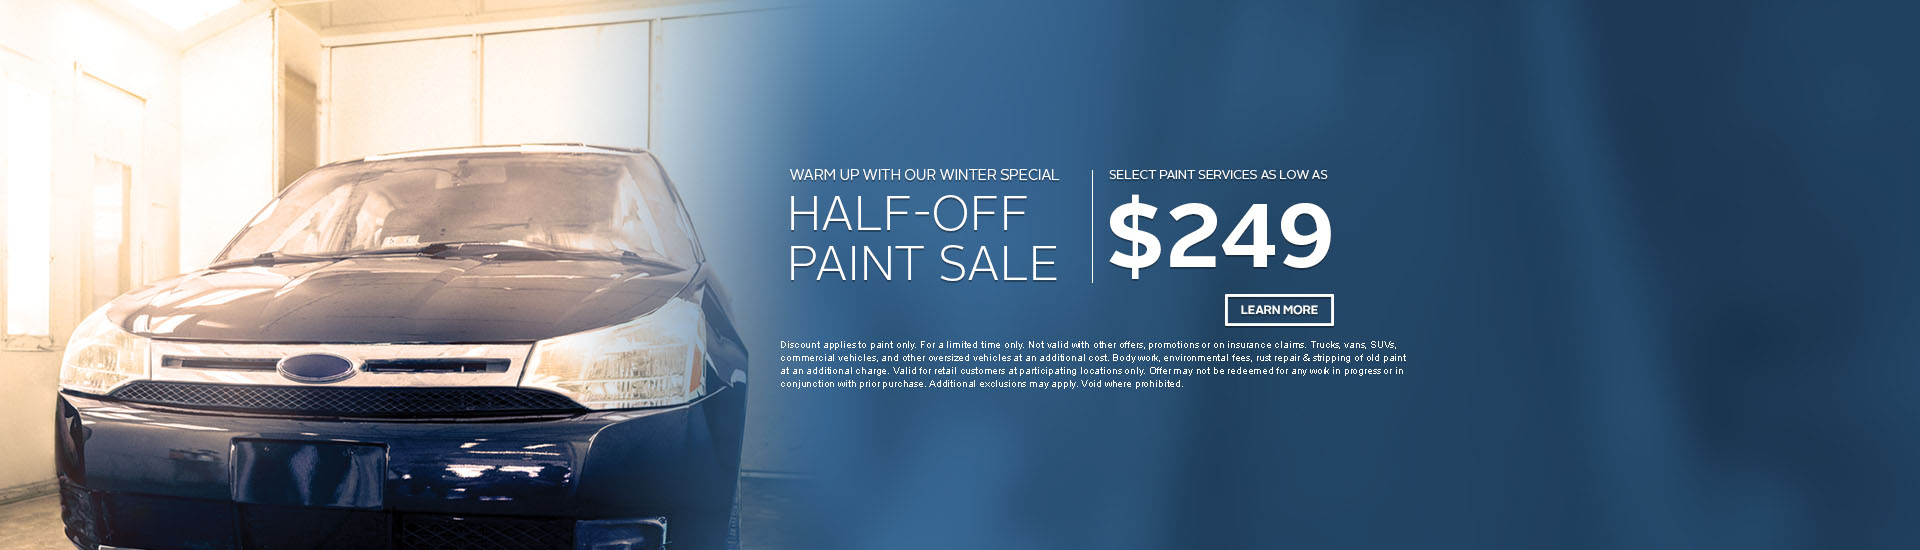 Maaco: Half-Off Paint Sale starting at: $249, click Learn More for further details.